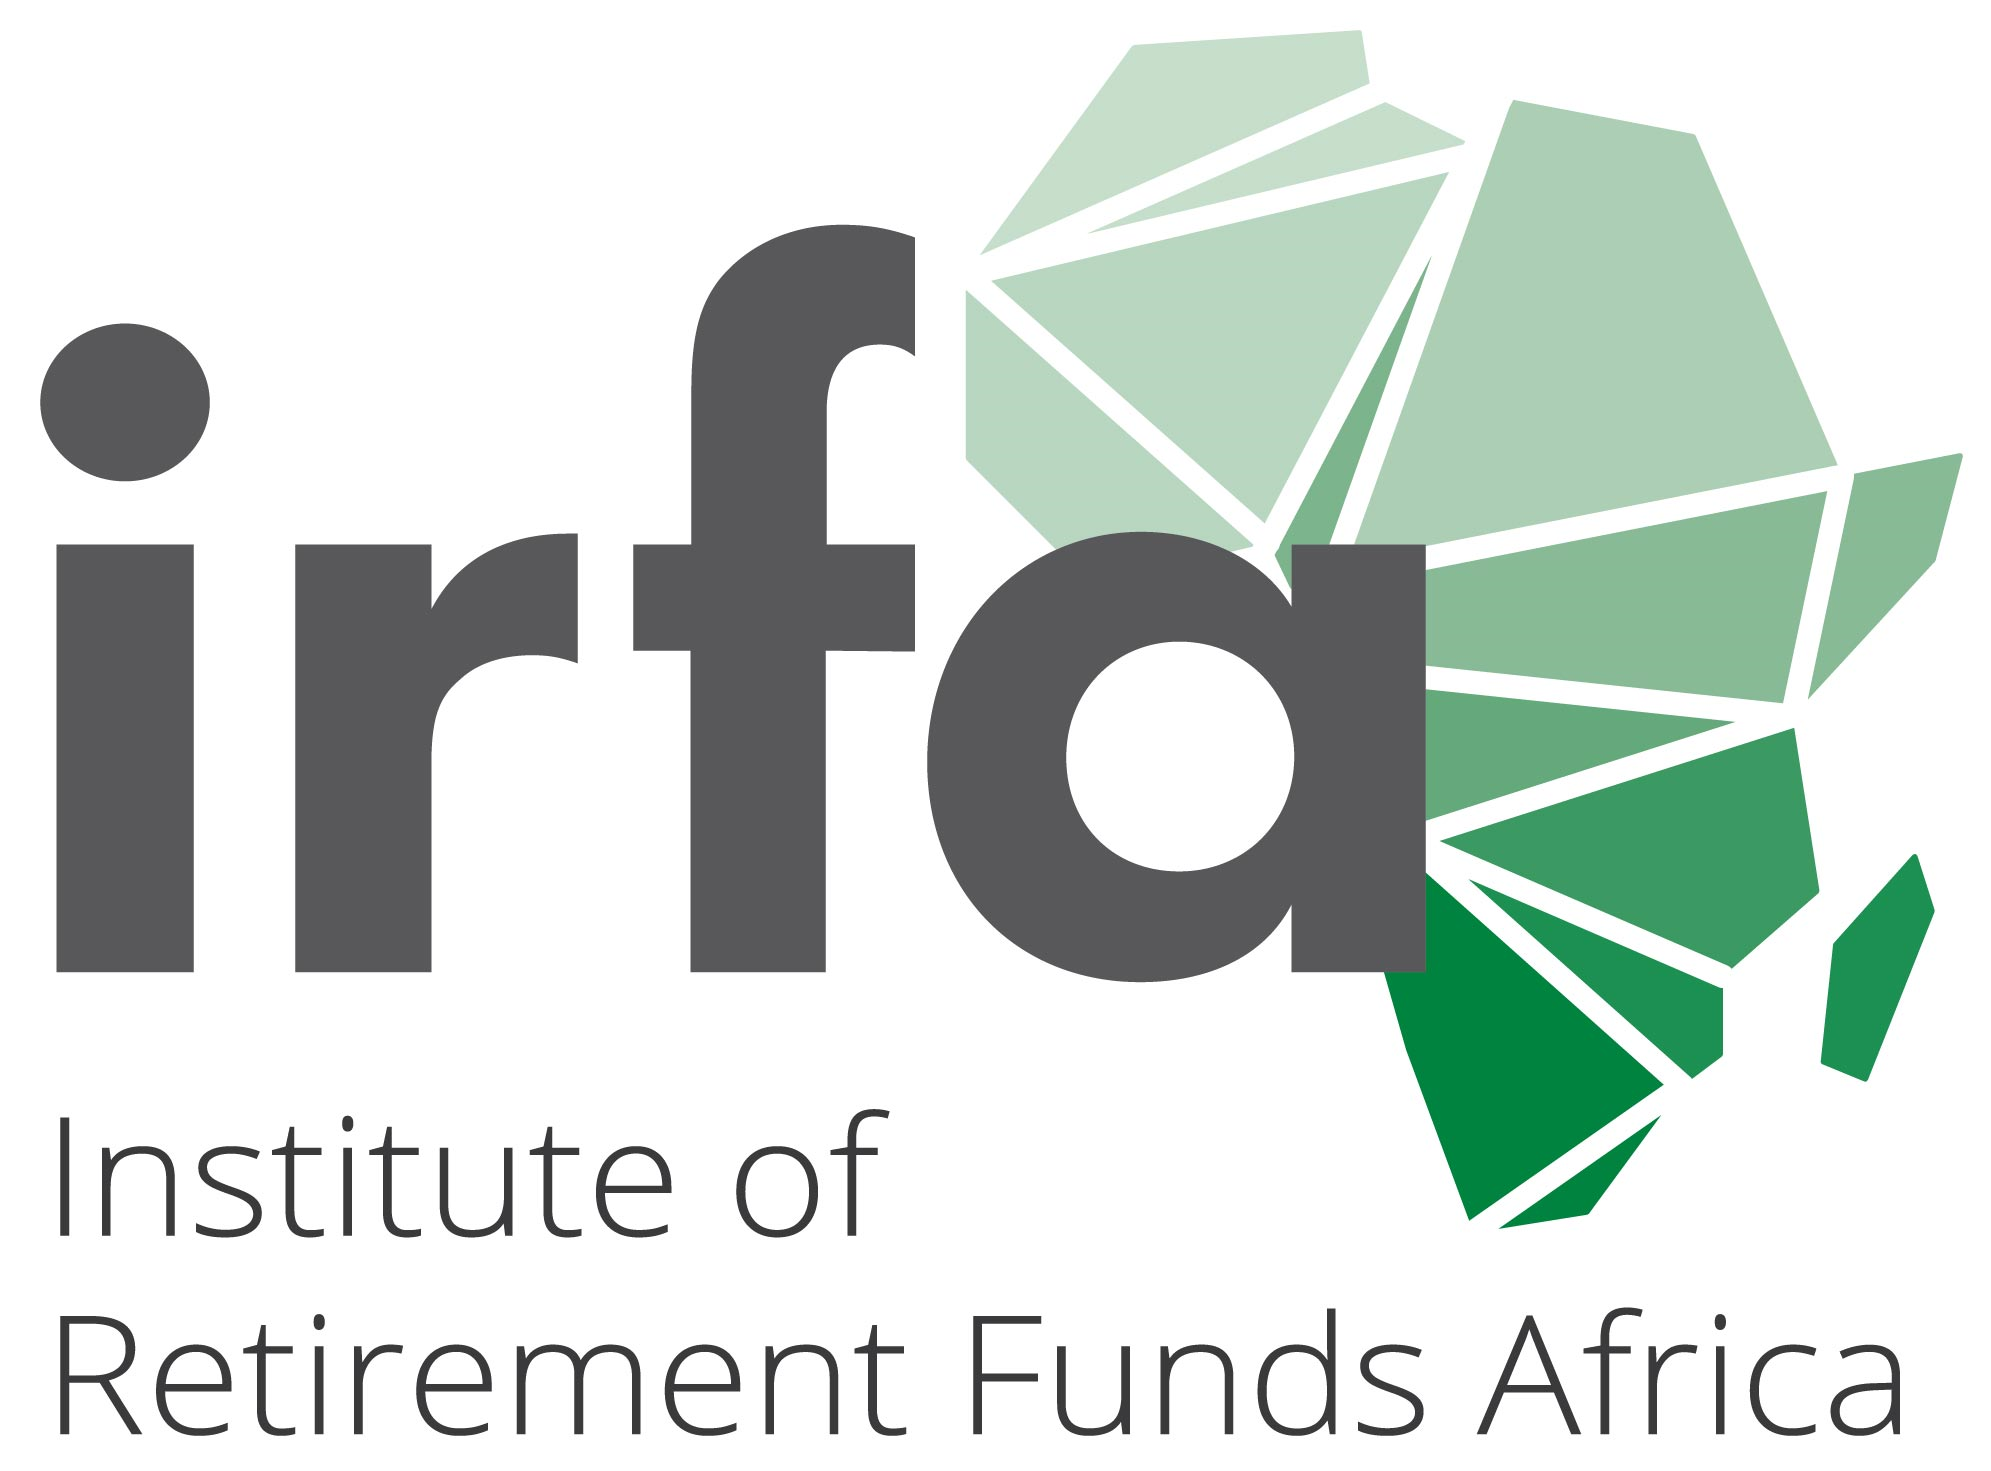 Institute of retirement funds Africa